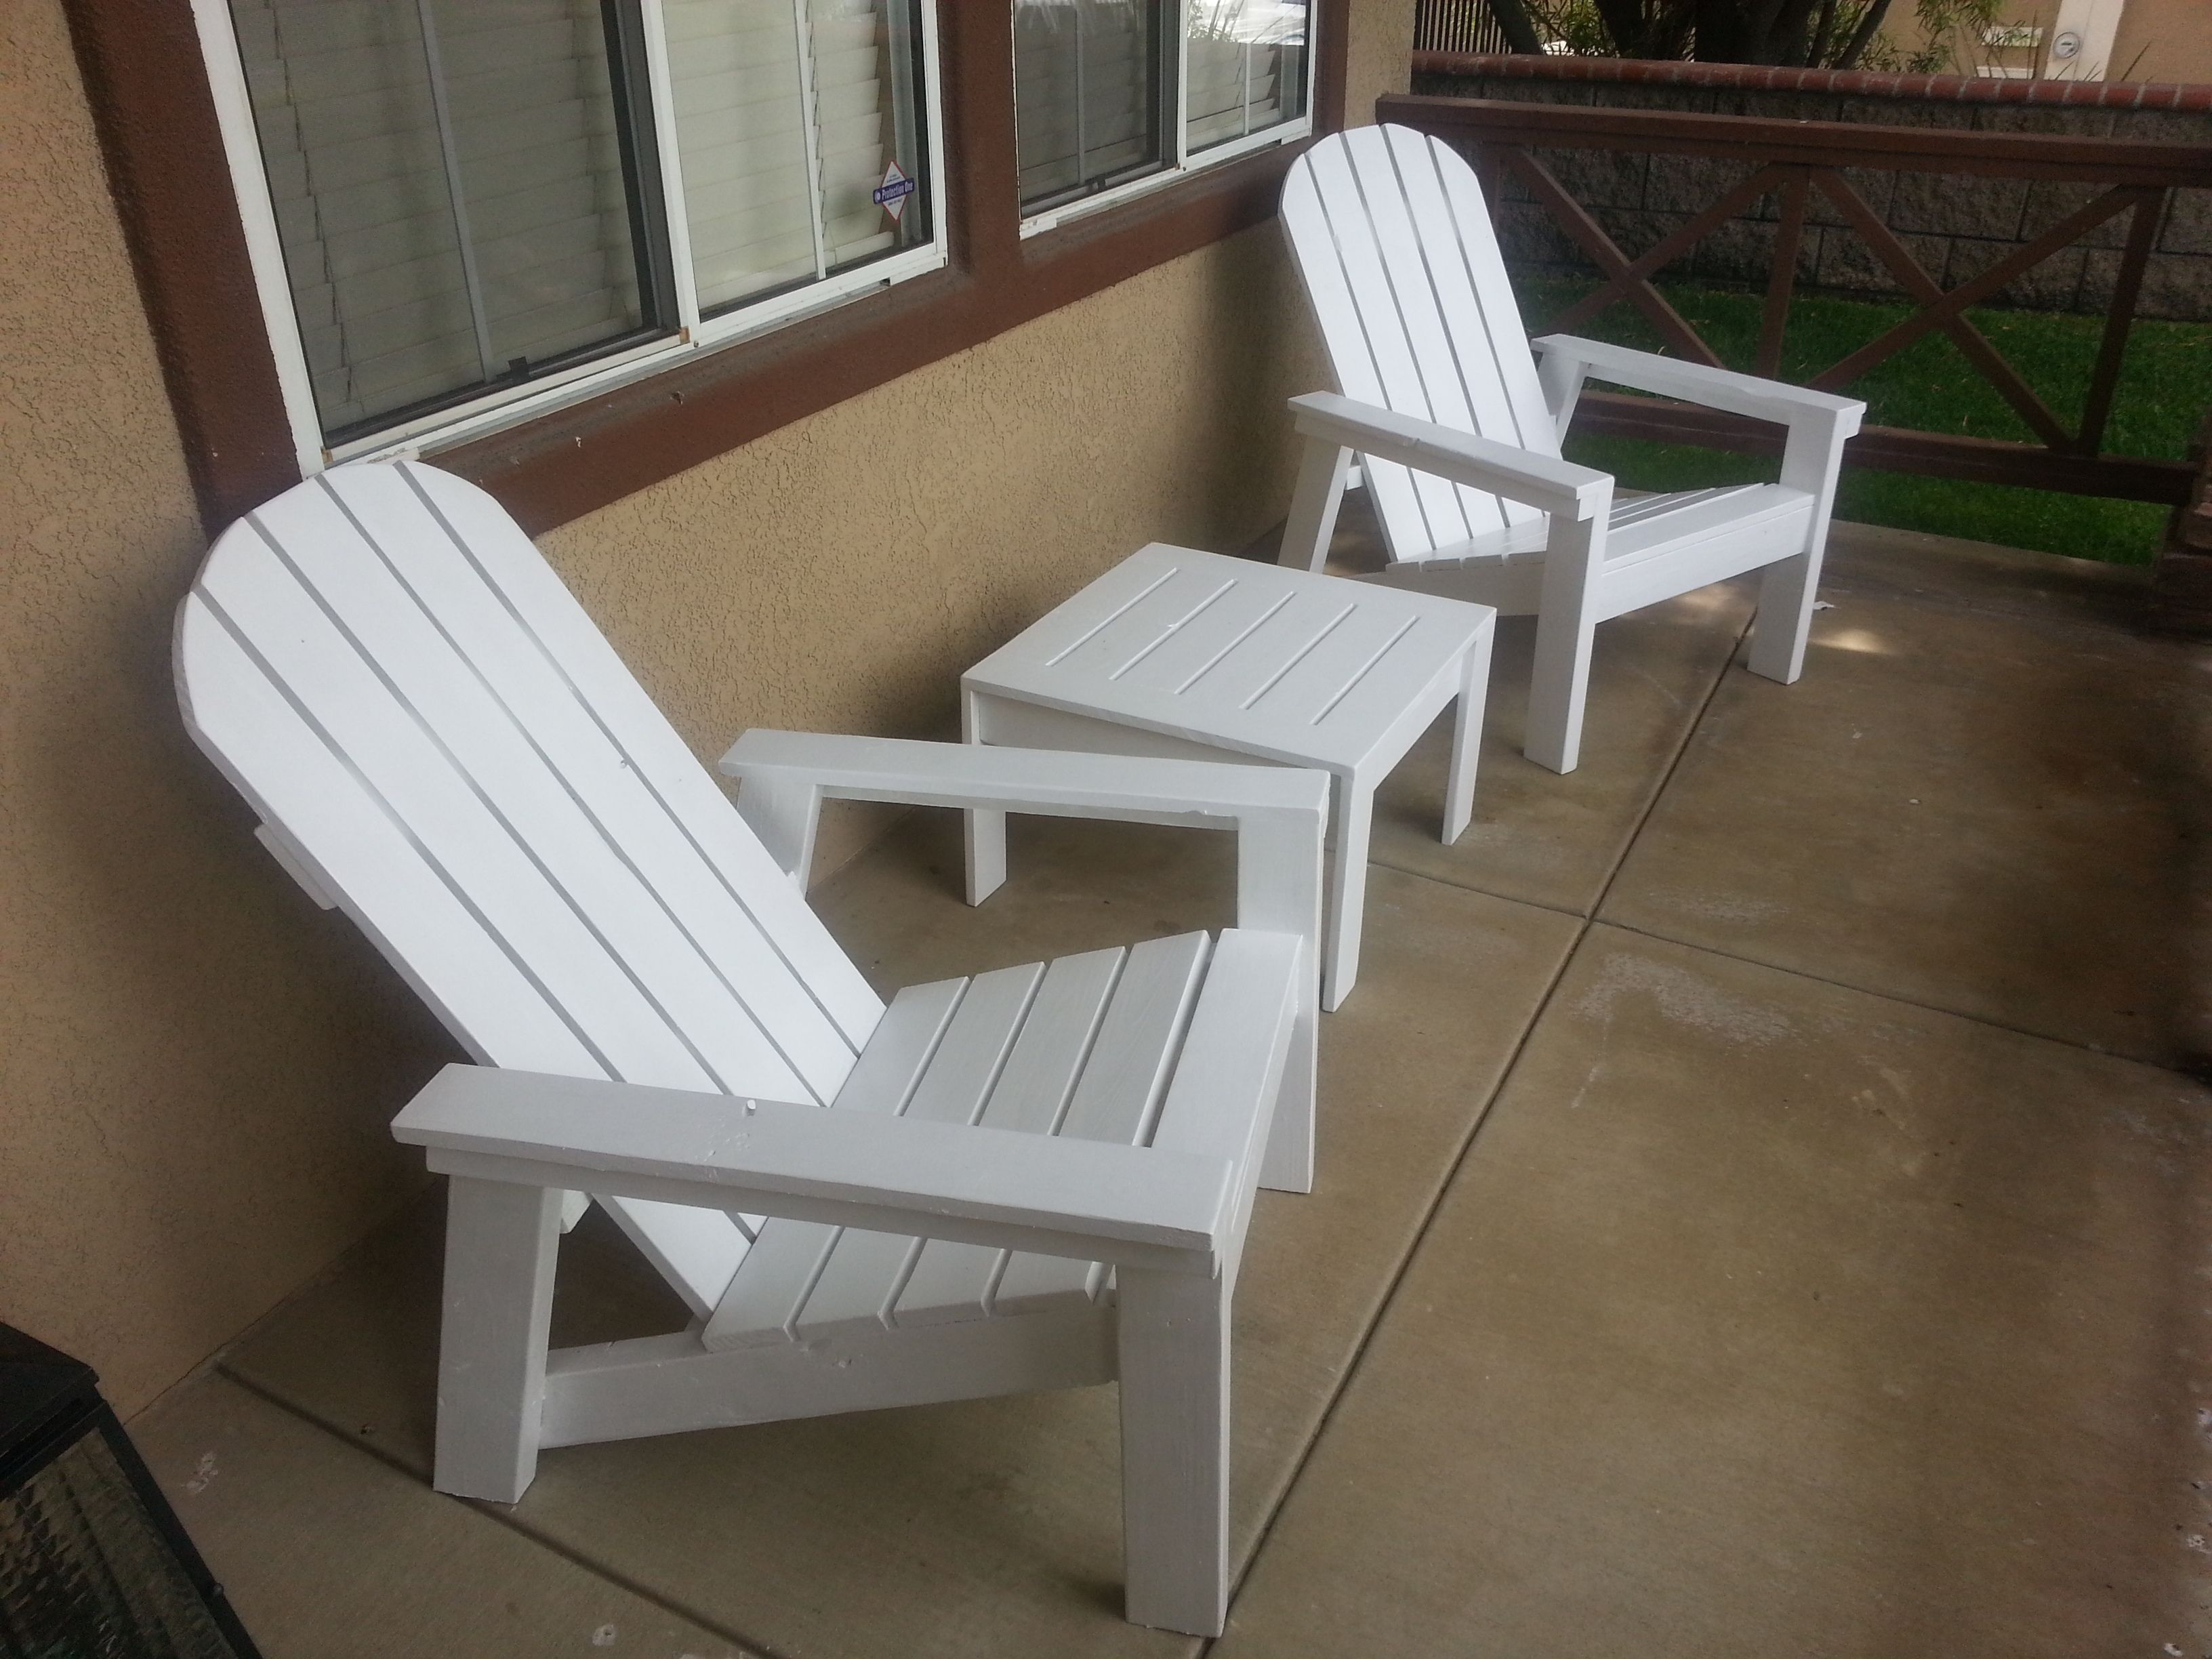 How To Build An Adirondack Chair With Plans Adirondack Chairs Diy Adirondack Chair Plans Free Adirondack Chair